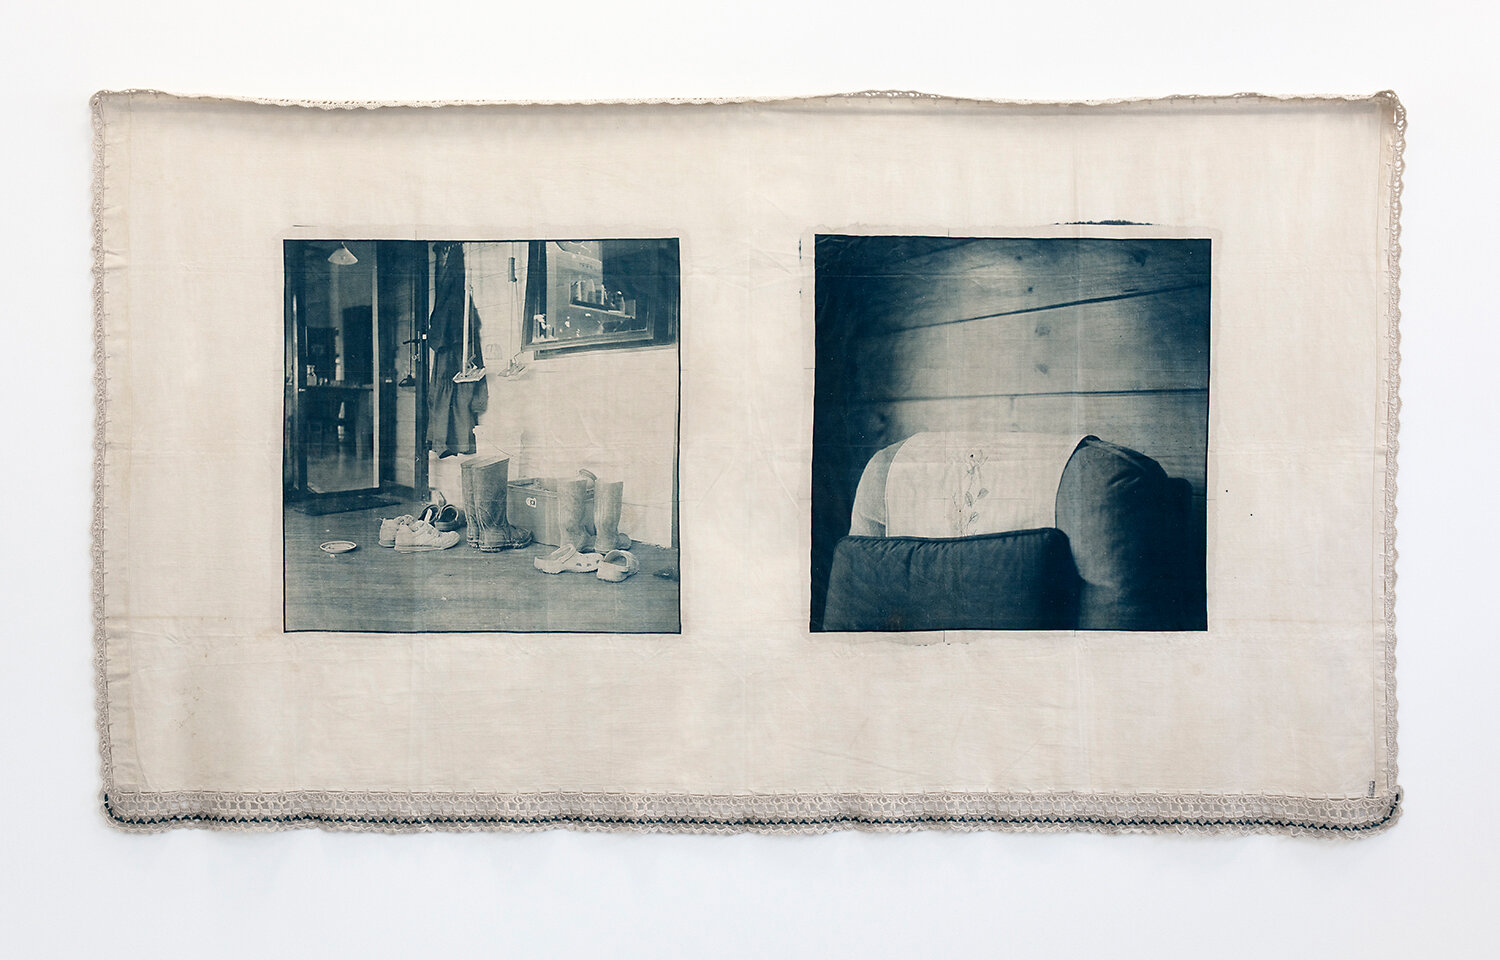 Caroline McQuarrie,  Reasons For Silence (ii) , from the series  Reasons For Silence , cyanotype and wool embroidery on vintage cotton bed sheet, 2010. Courtesy the artist.